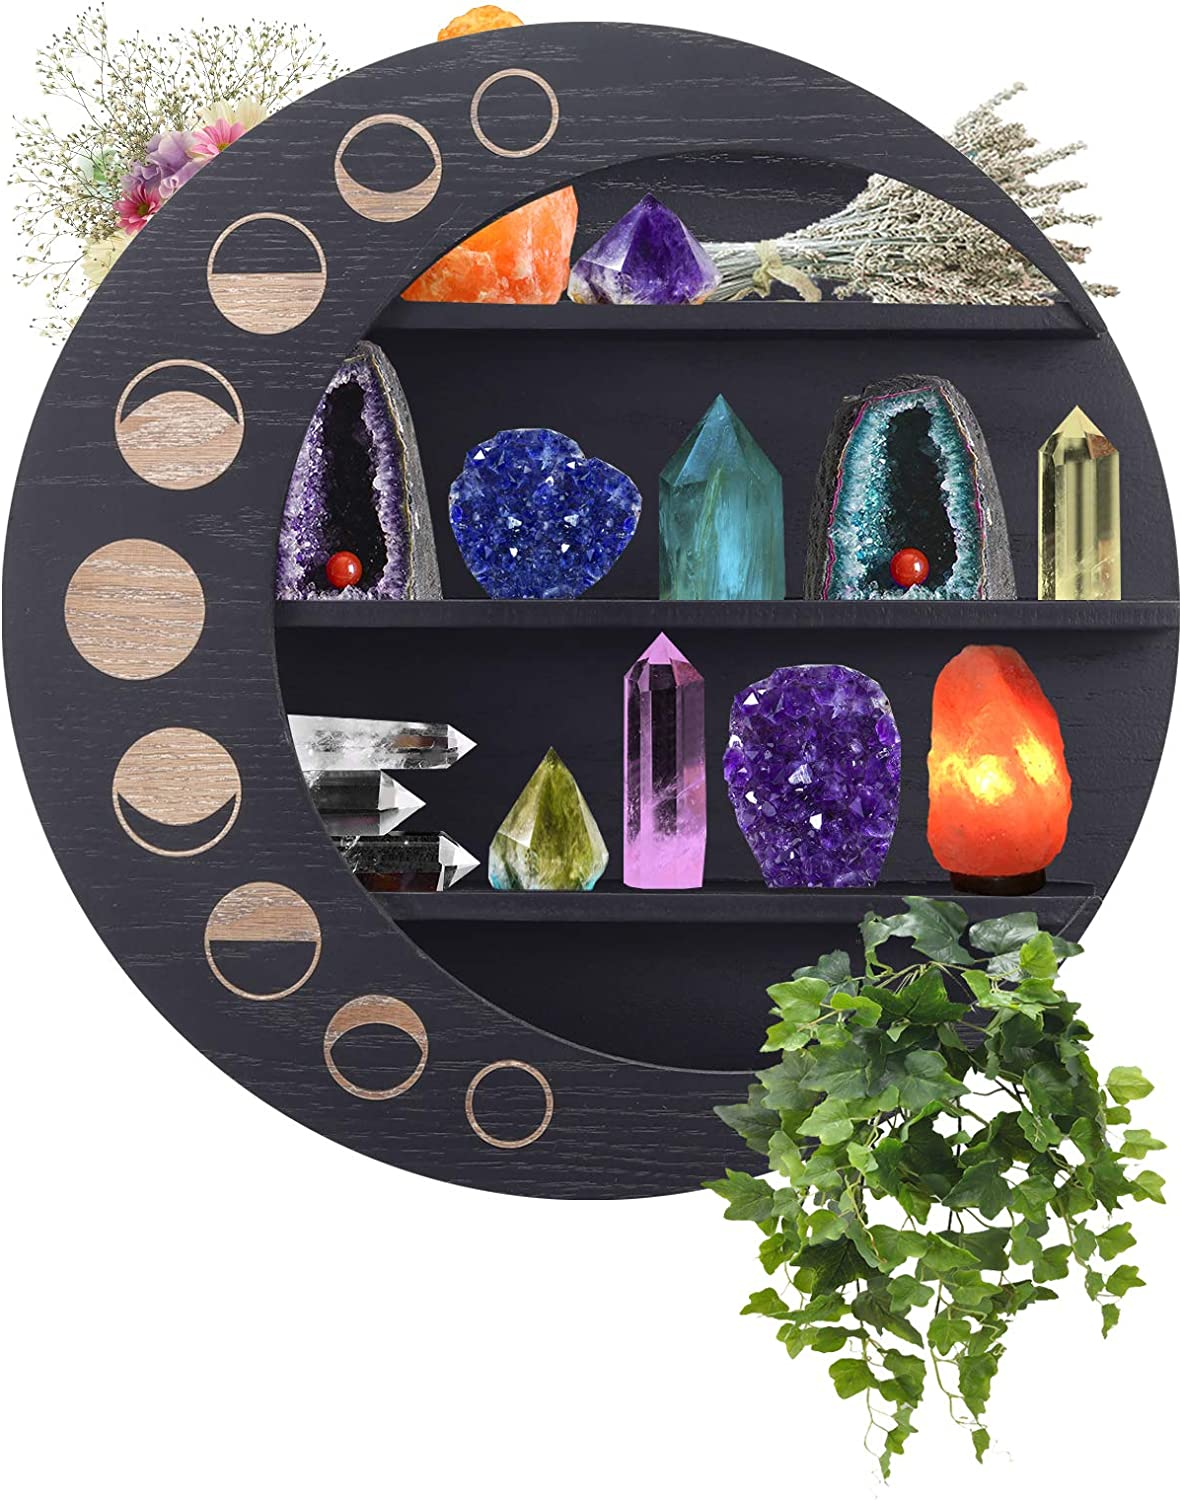 SSISSI Black Crescent Moon Shelf - Crystal Display Shelf - Nail Polish Rack, Crystal Holder & Essential Oil Organizer - Display Shelves For Collectibles - Moon Phase Wall Hanging 3 Tier Crystal Decor